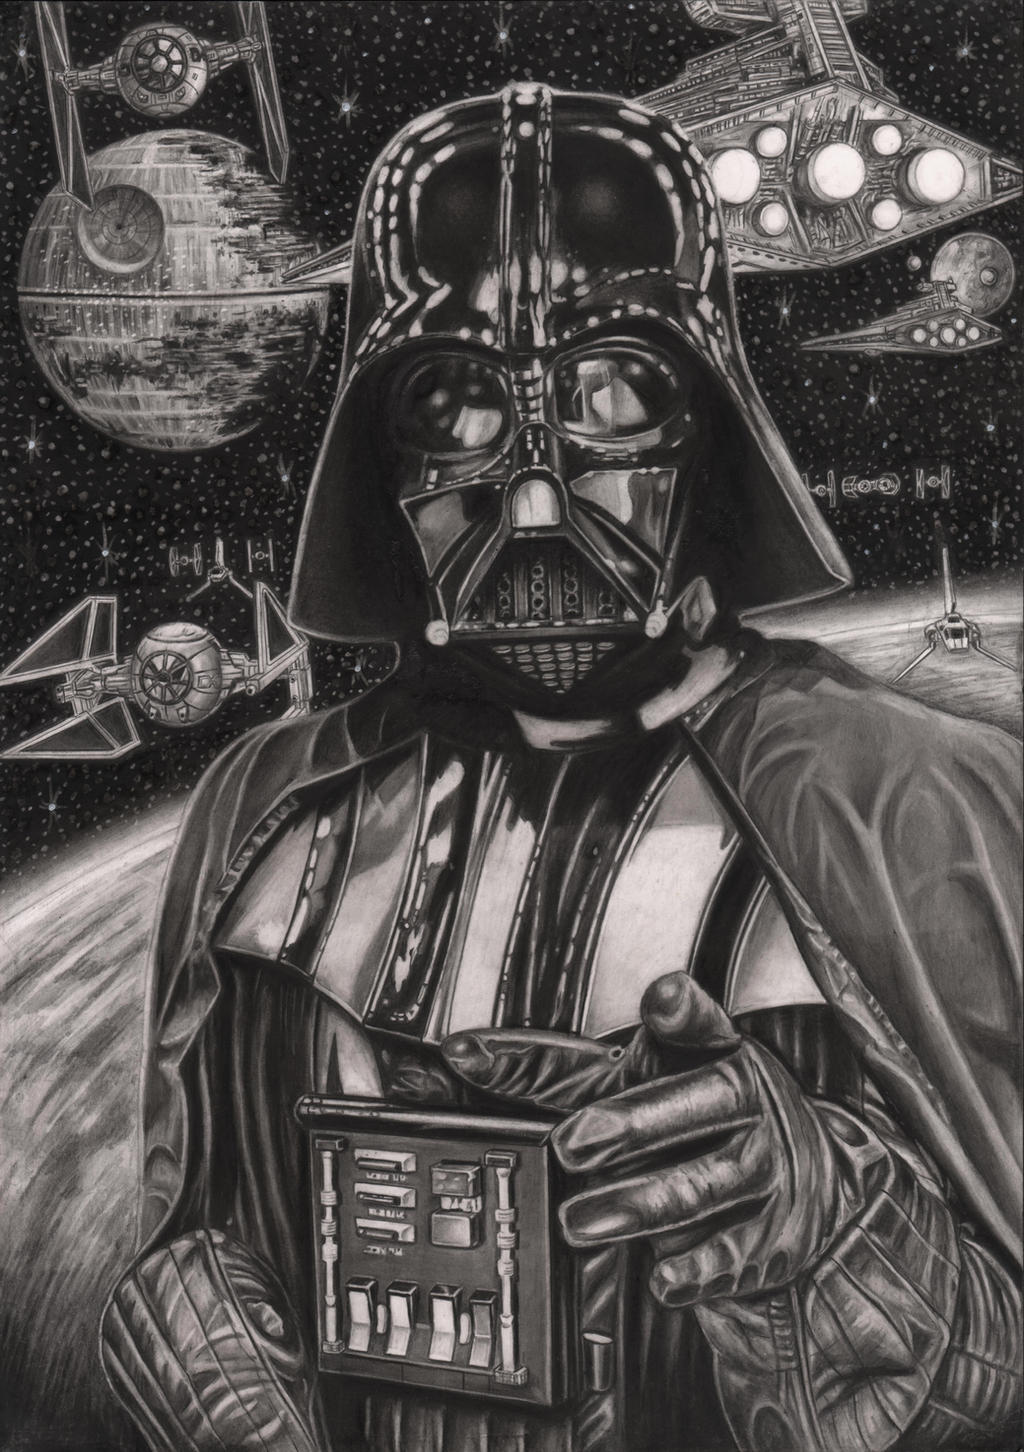 'THE EMPIRE NEEDS YOU' Graphite drawing by Pen-Tacular-Artist